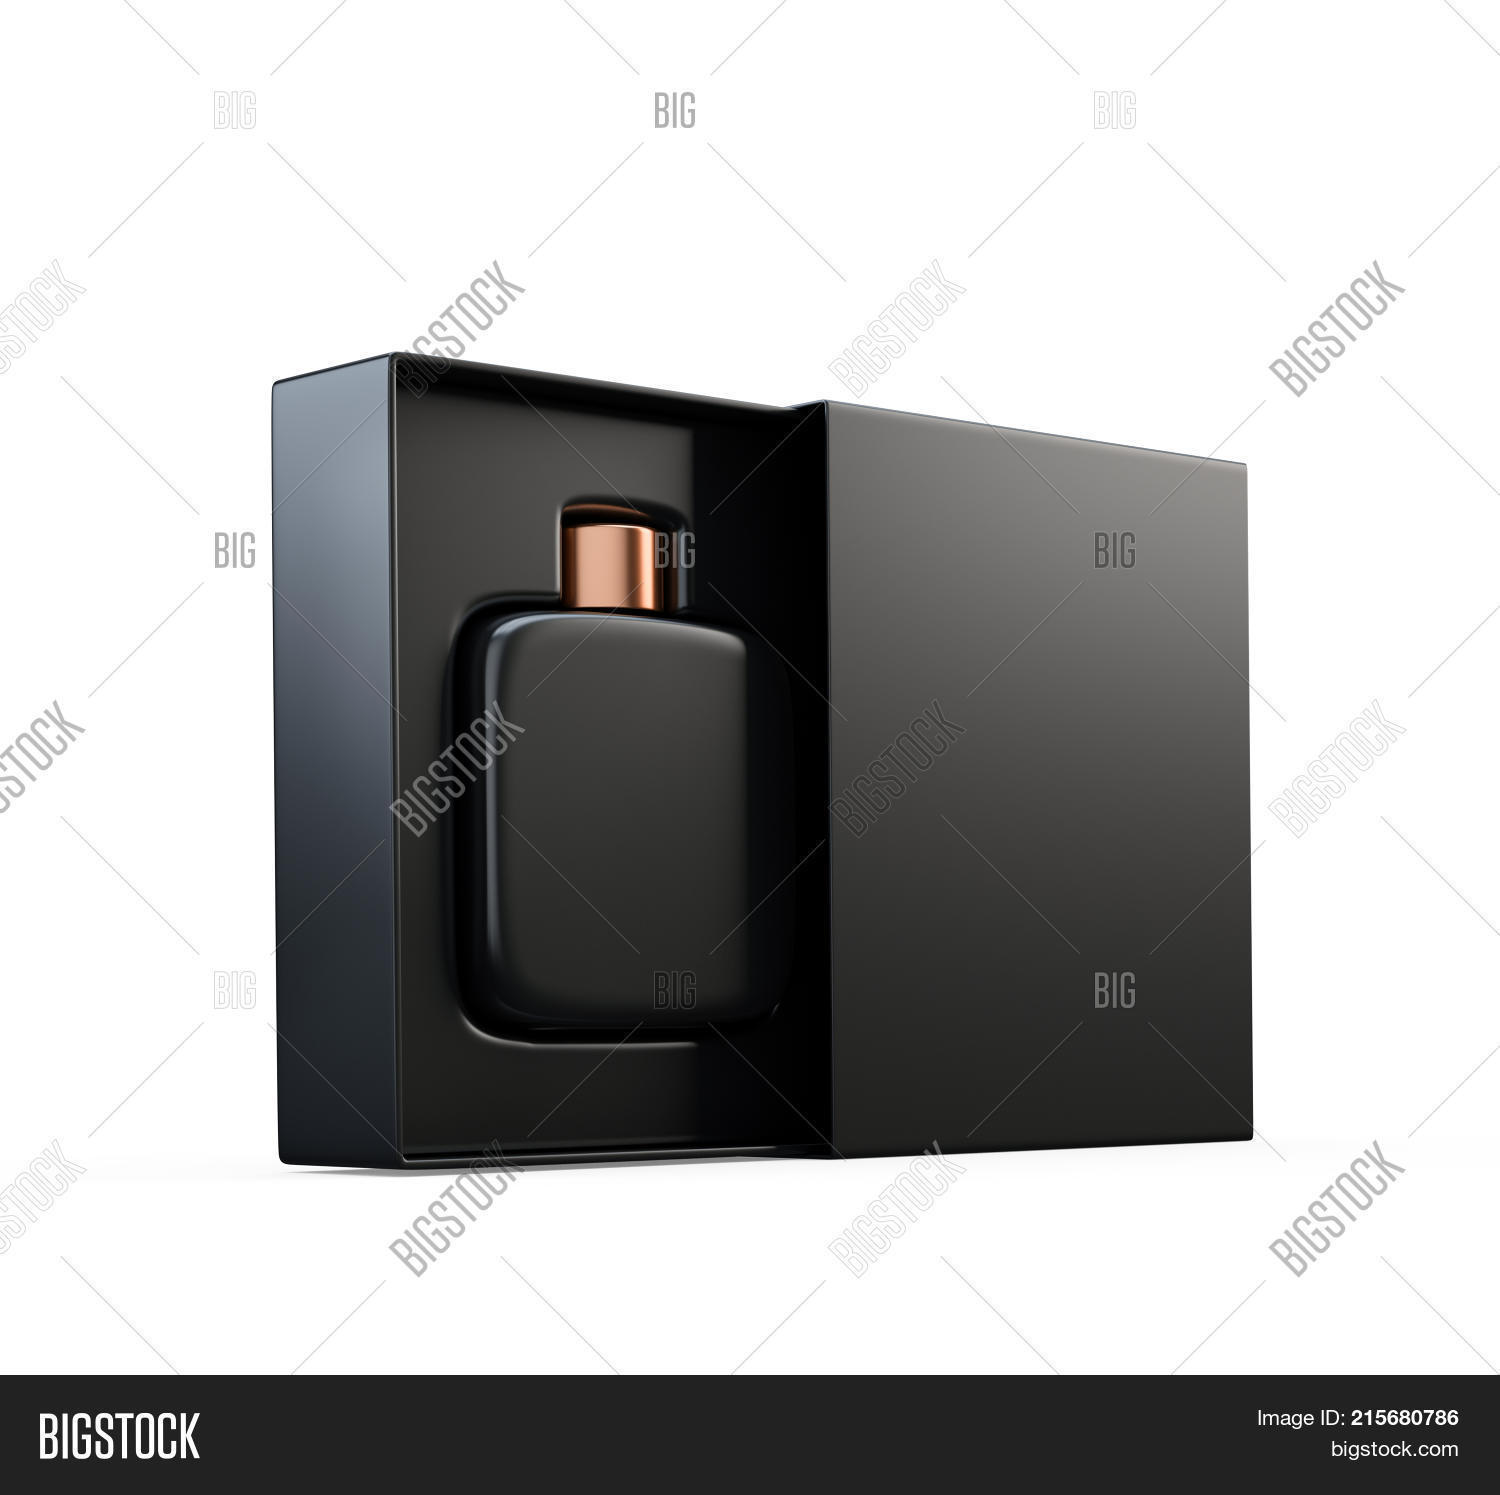 Black Fragrance Perfume Bottle Mockup In Open Box Isolated On